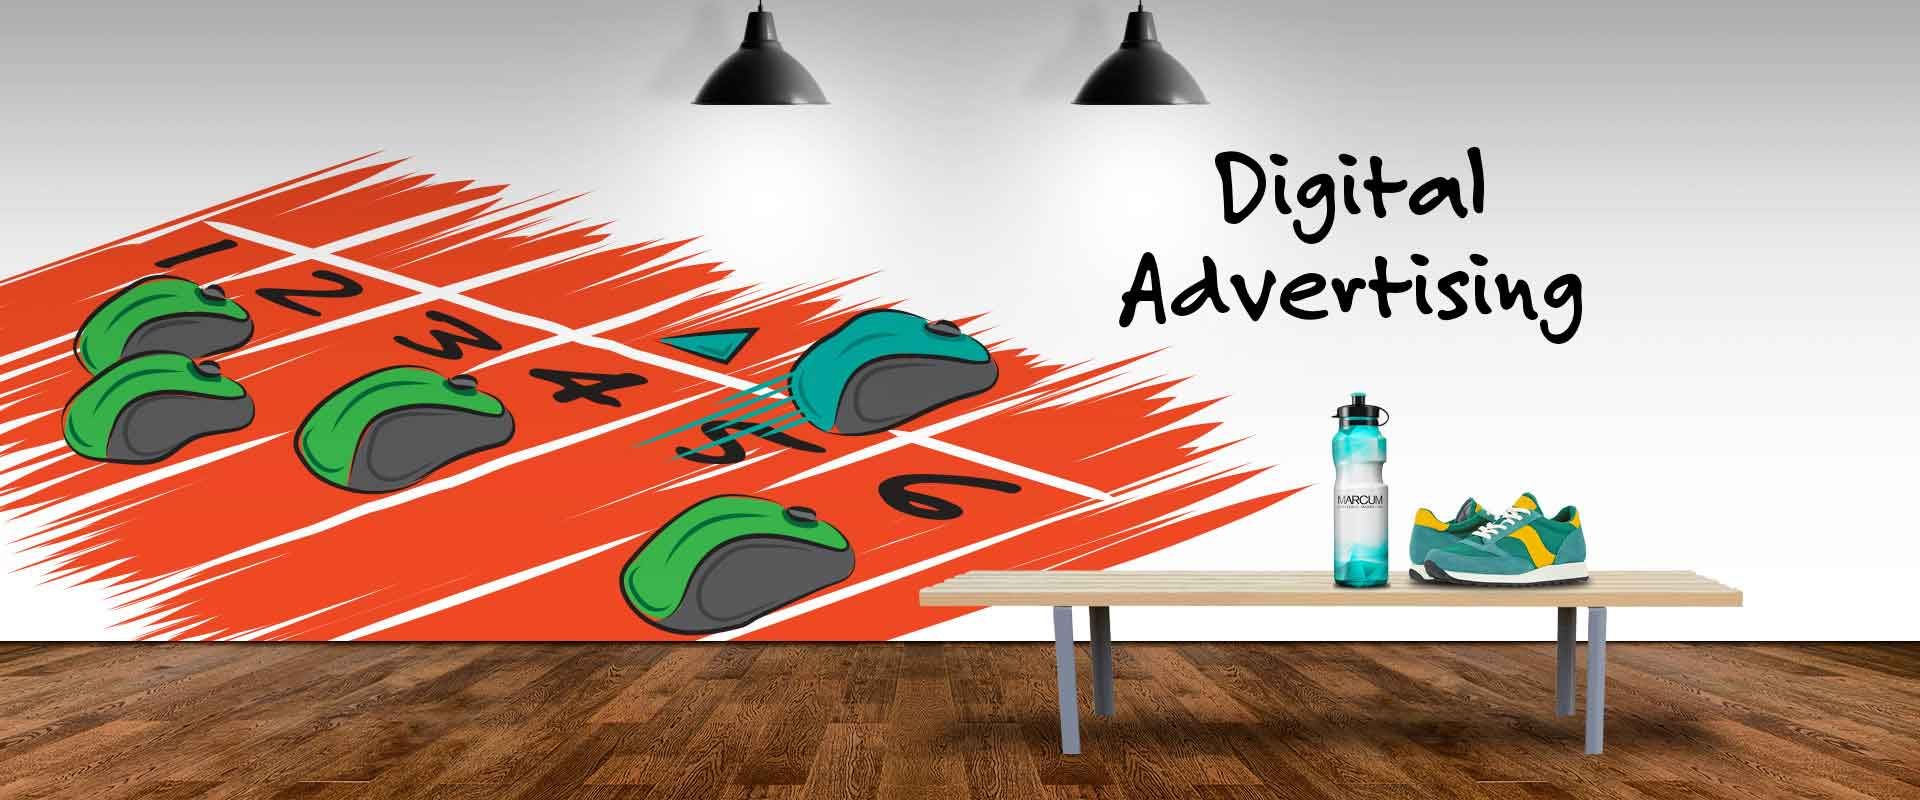 Digital-Advertising-Banner2-1